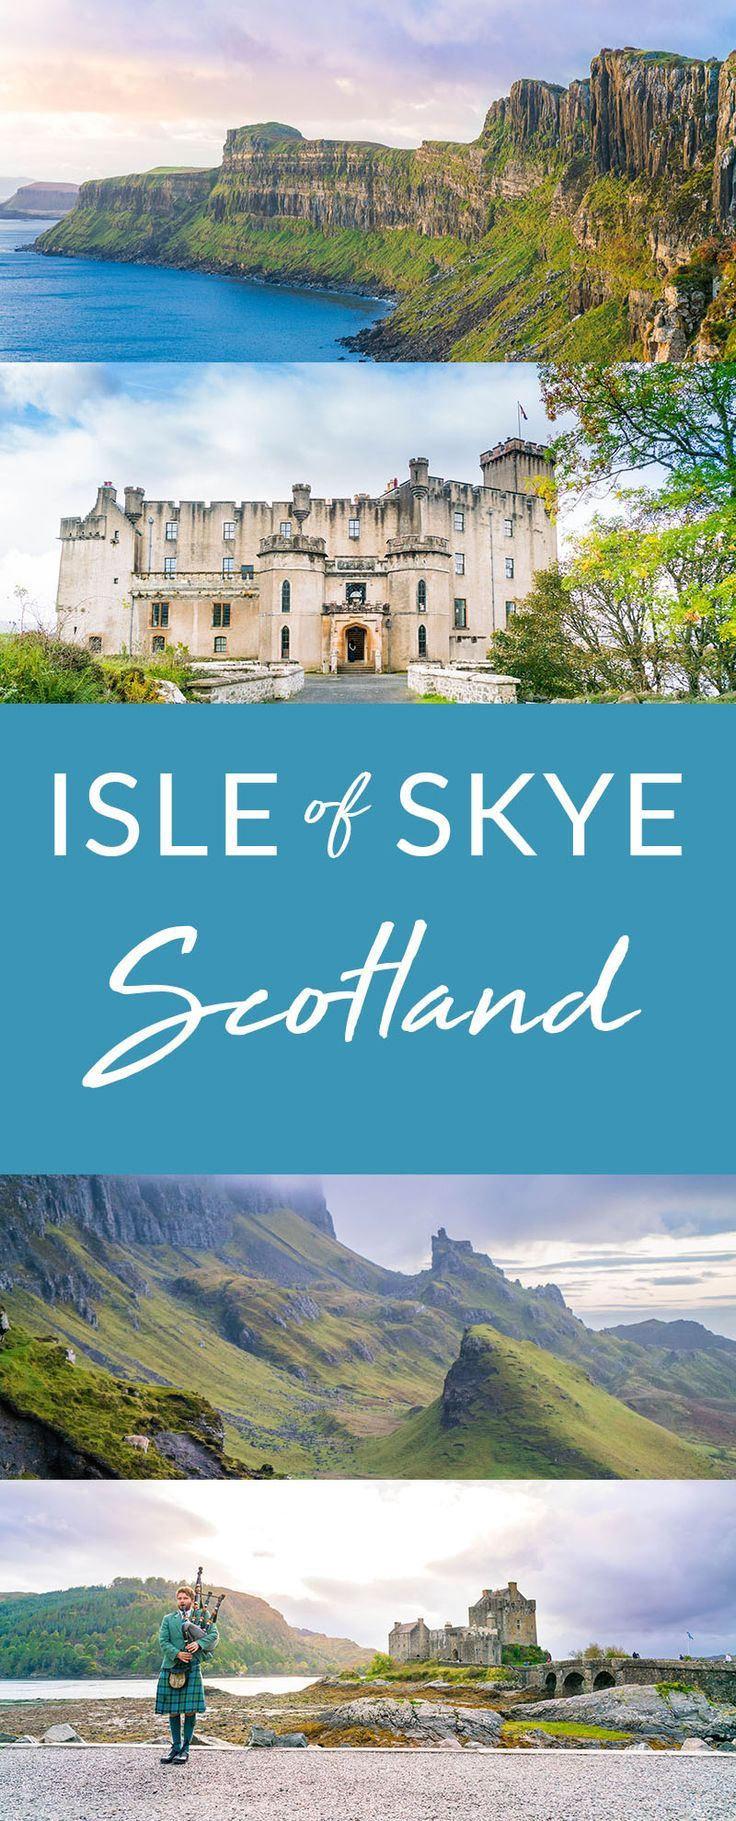 Learn all about the beautiful, mystical Isle of Skye in Scotland. If you're heading to Scotland don't skip the Isle of Skye! #scotland